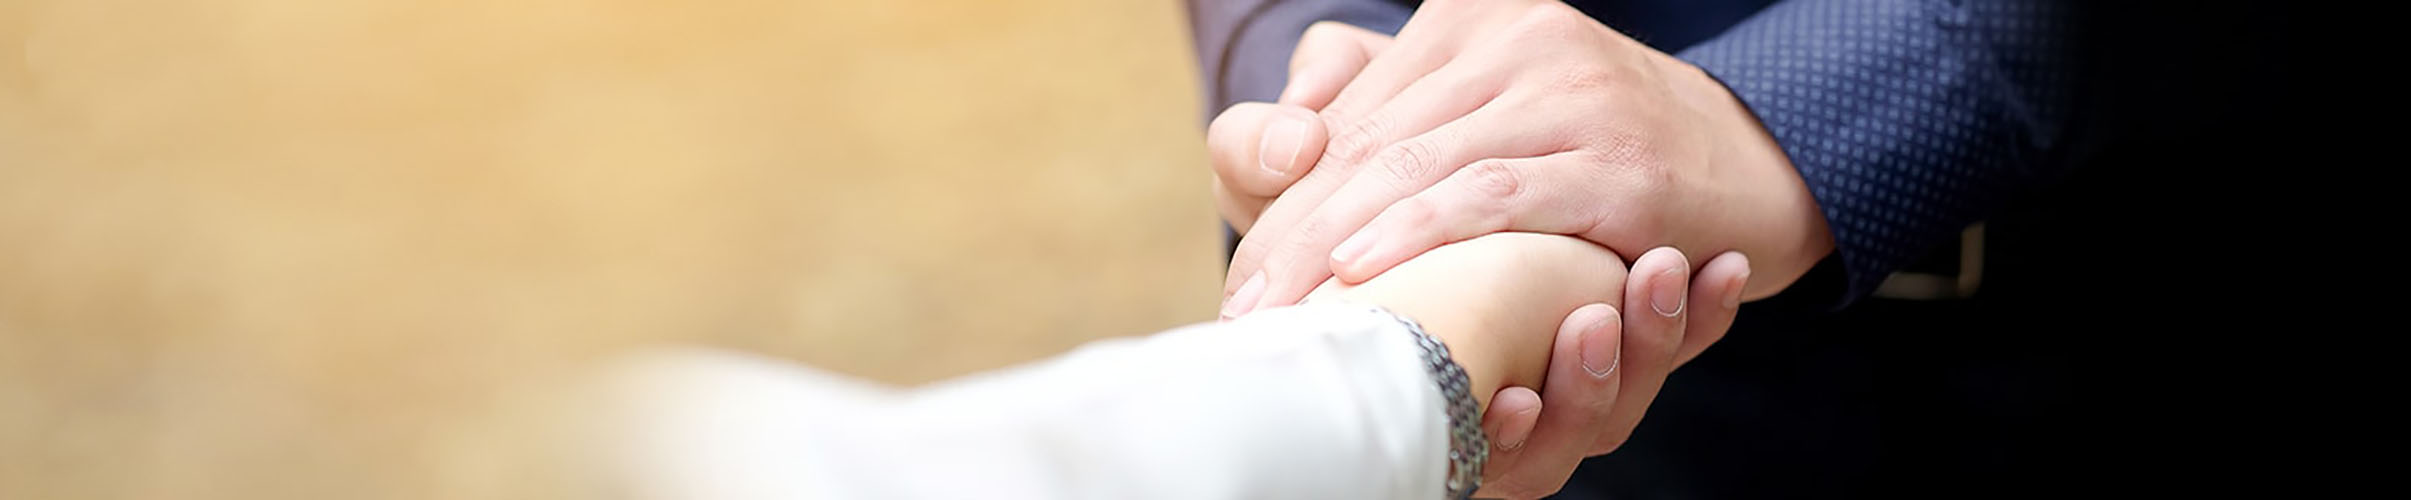 An Image of a hand shake